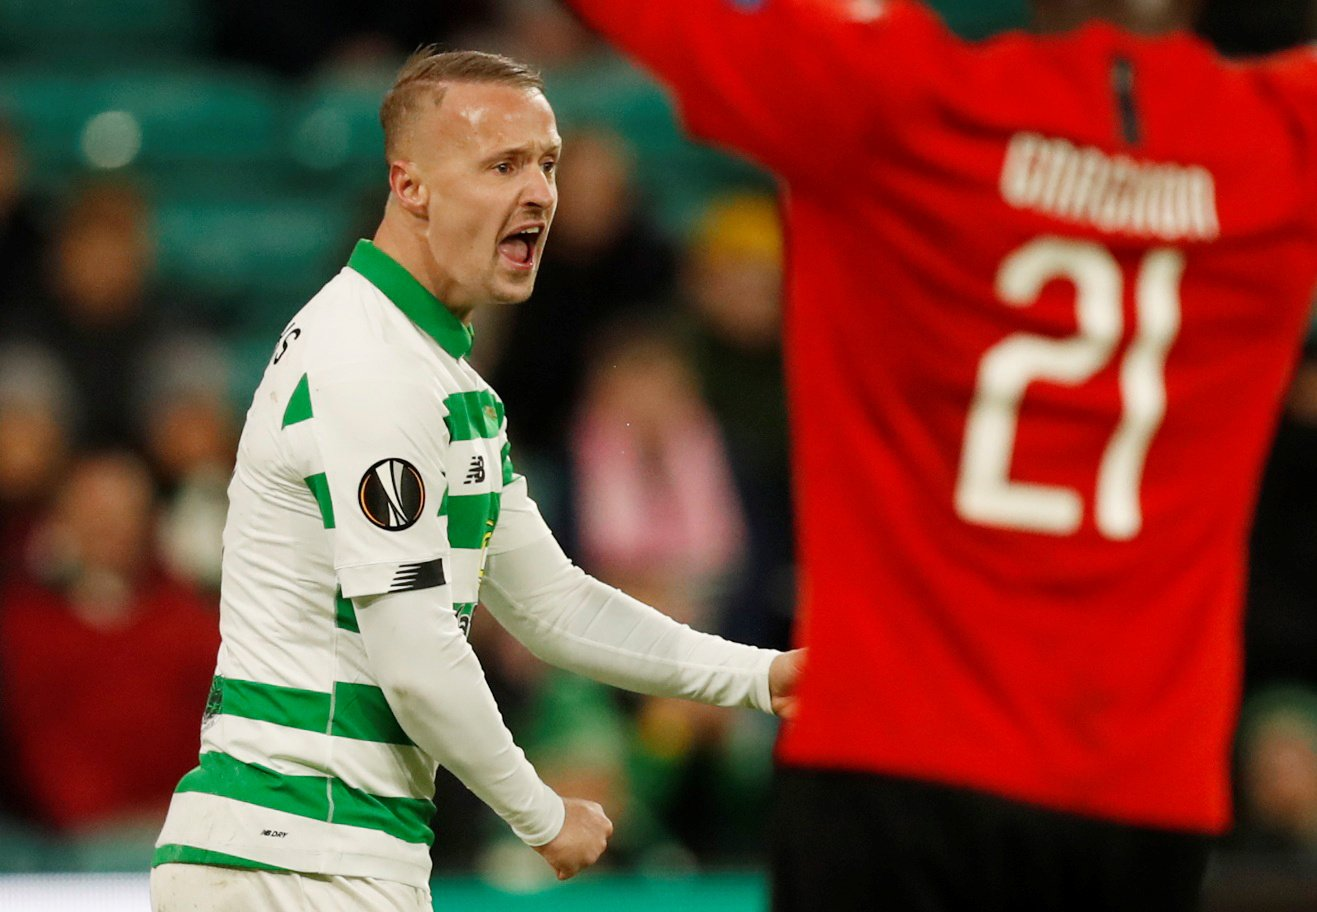 Celtic: Fans loved seeing Leigh Griffiths enter the fray against Hamilton